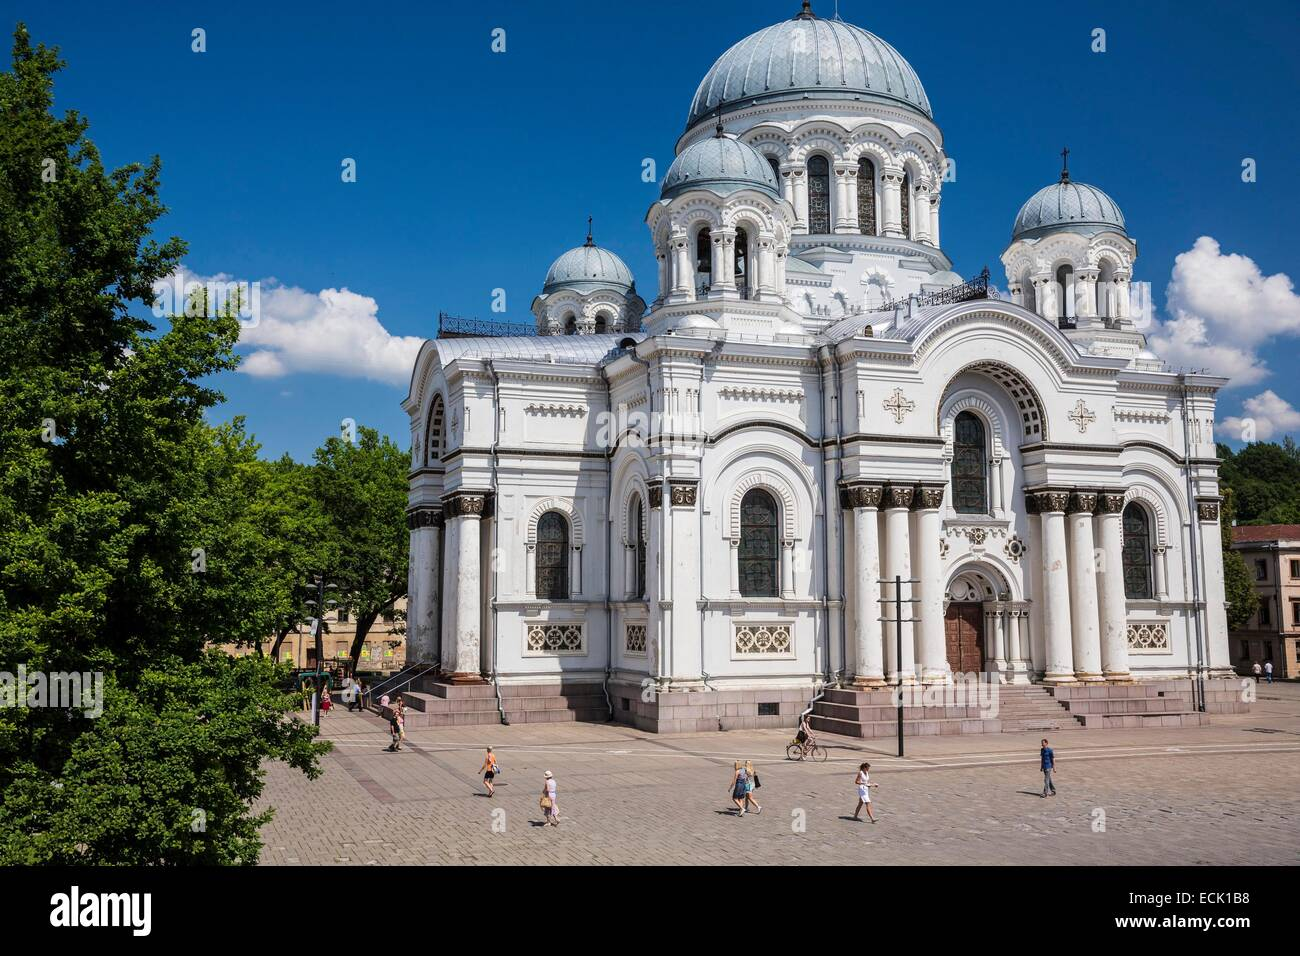 Lithuania (Baltic States), Kaunas County, Kaunas, church of Saint Michael the Archangel or Garrison church, Independence - Stock Image